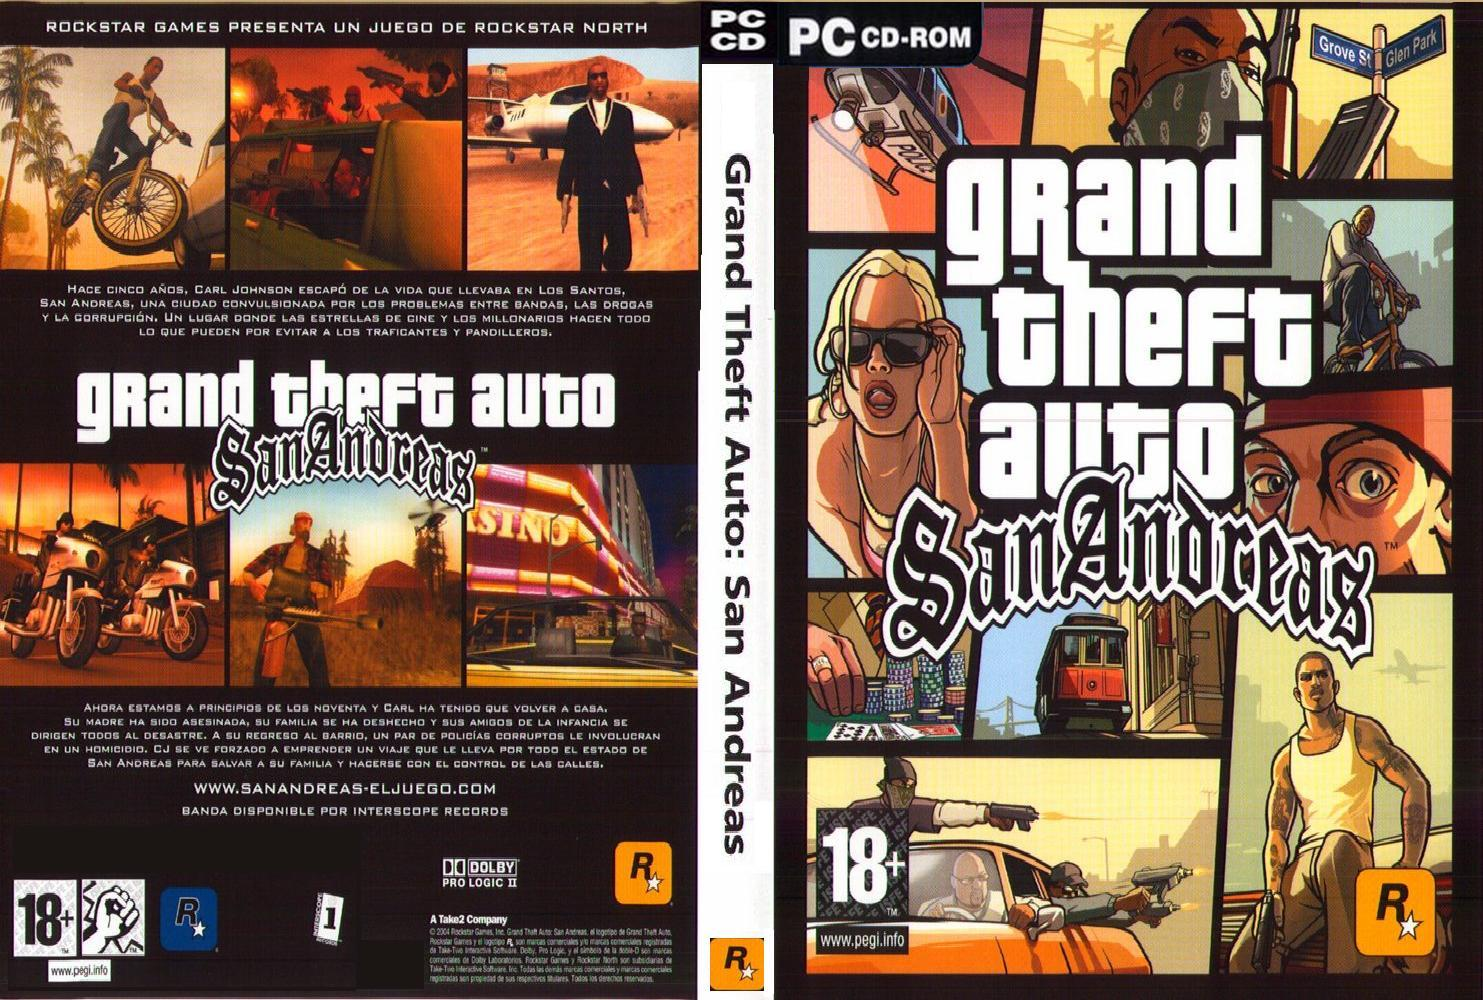 Grand-Theft-Auto-San-Andreas-Pc-Dvd-Espanol-Pc.jpg